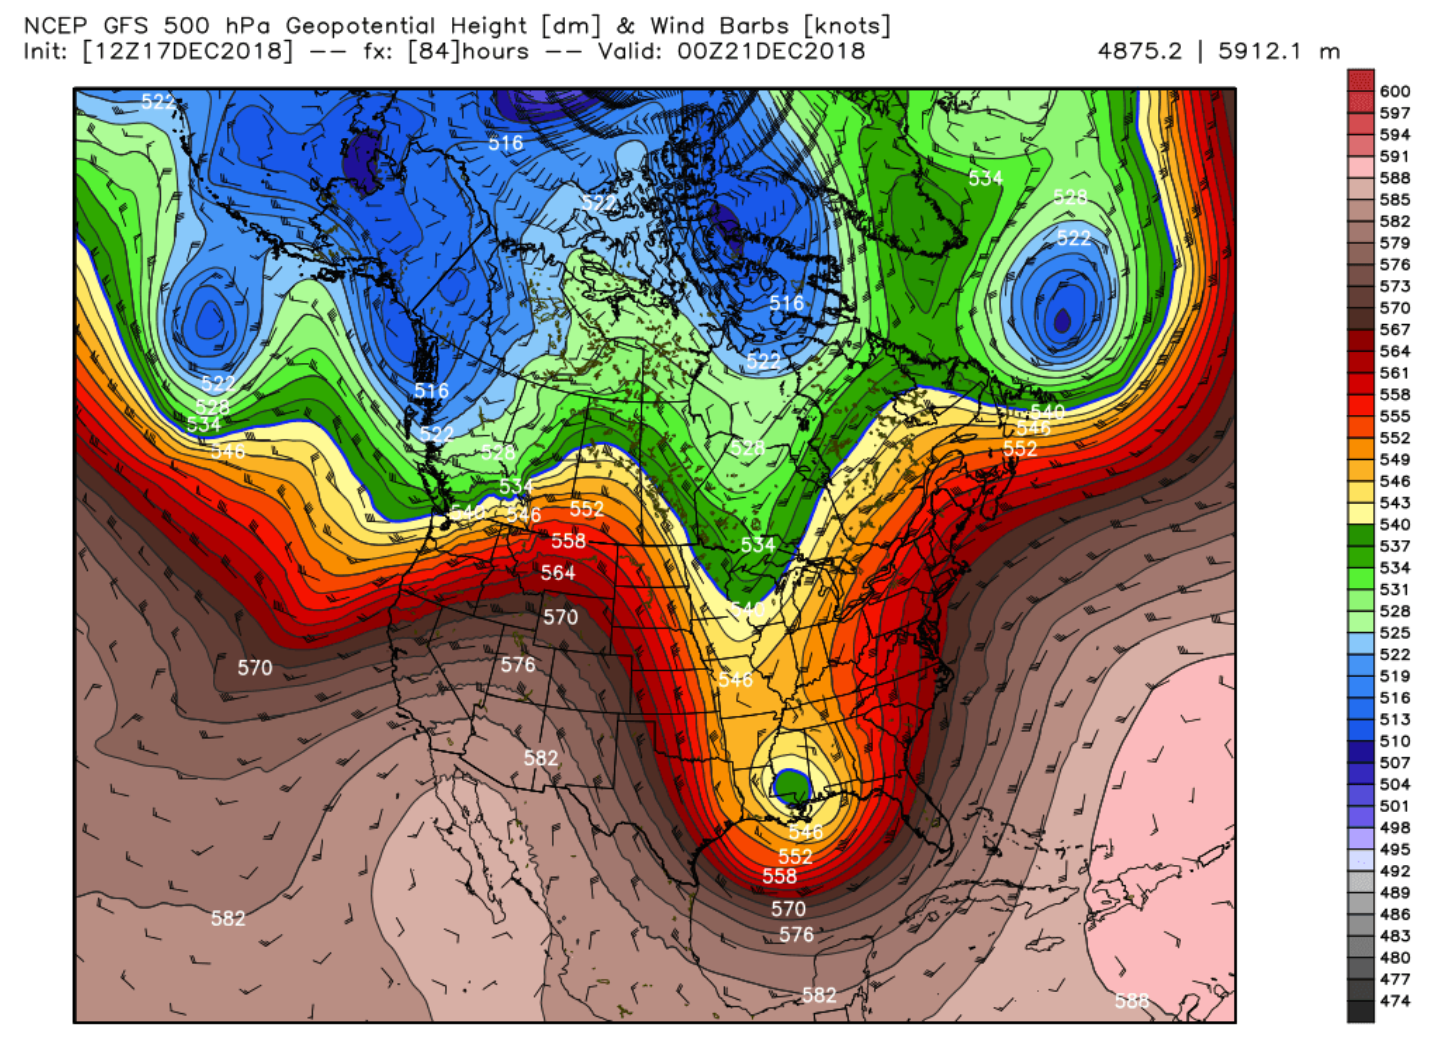 18Z GFS 500 mb heights forecast